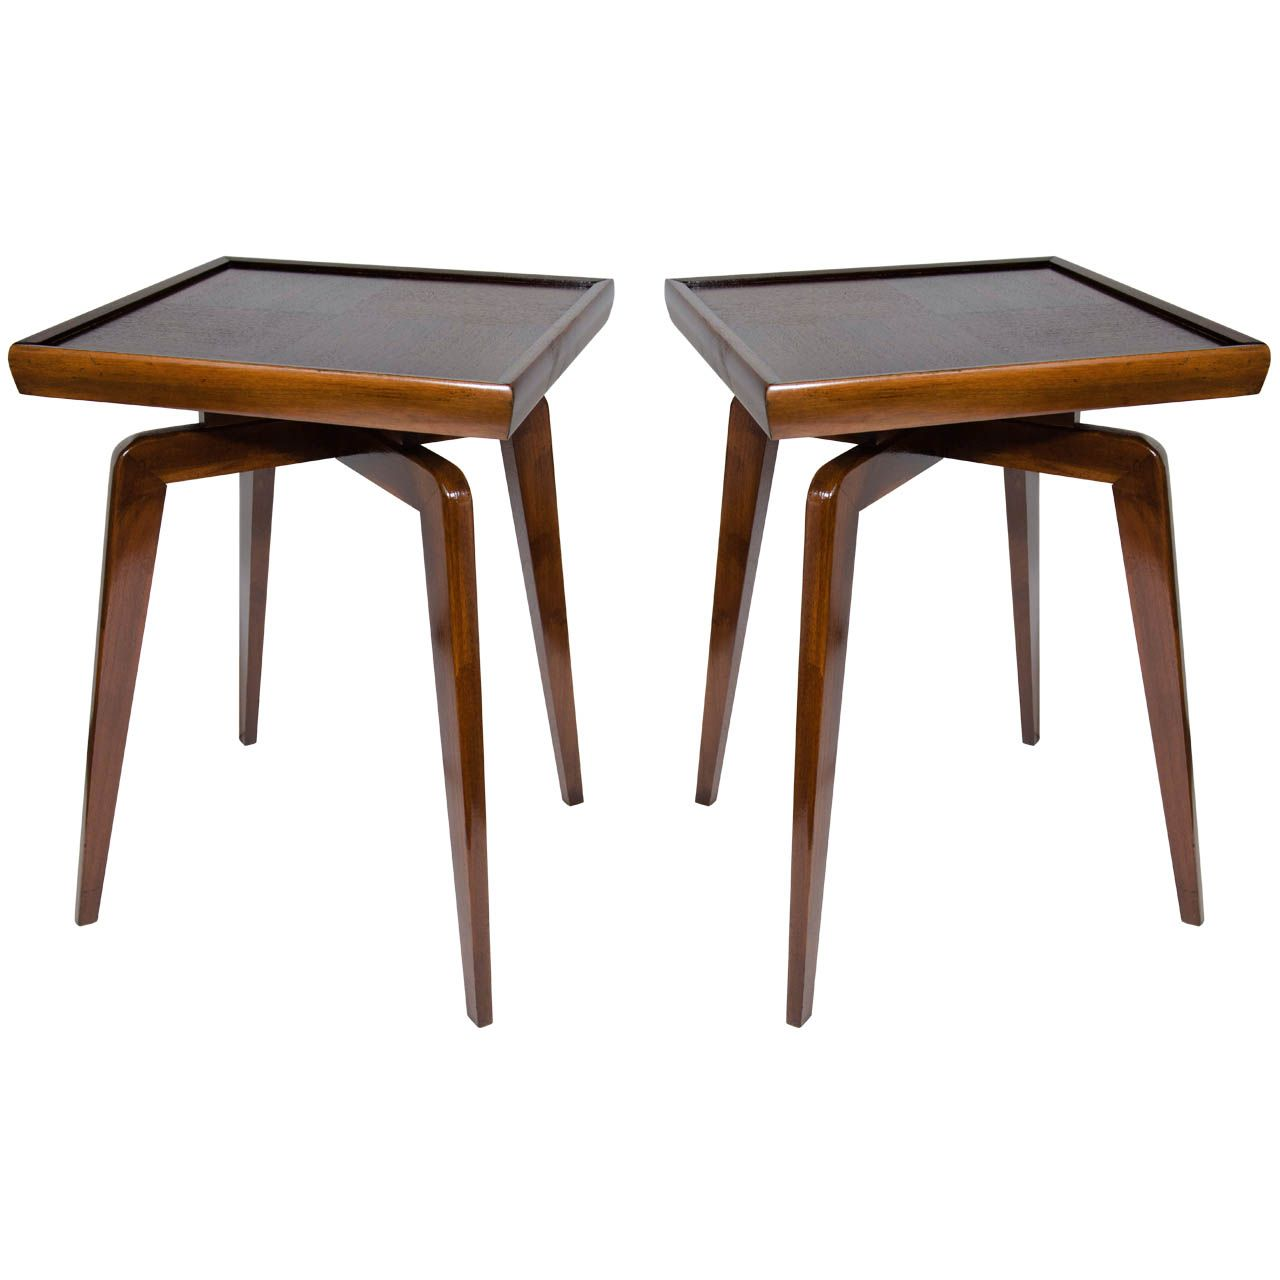 Mid Century Modern Living Room Tables Pair Of Mid Century Modern Walnut Wood Side Tables With